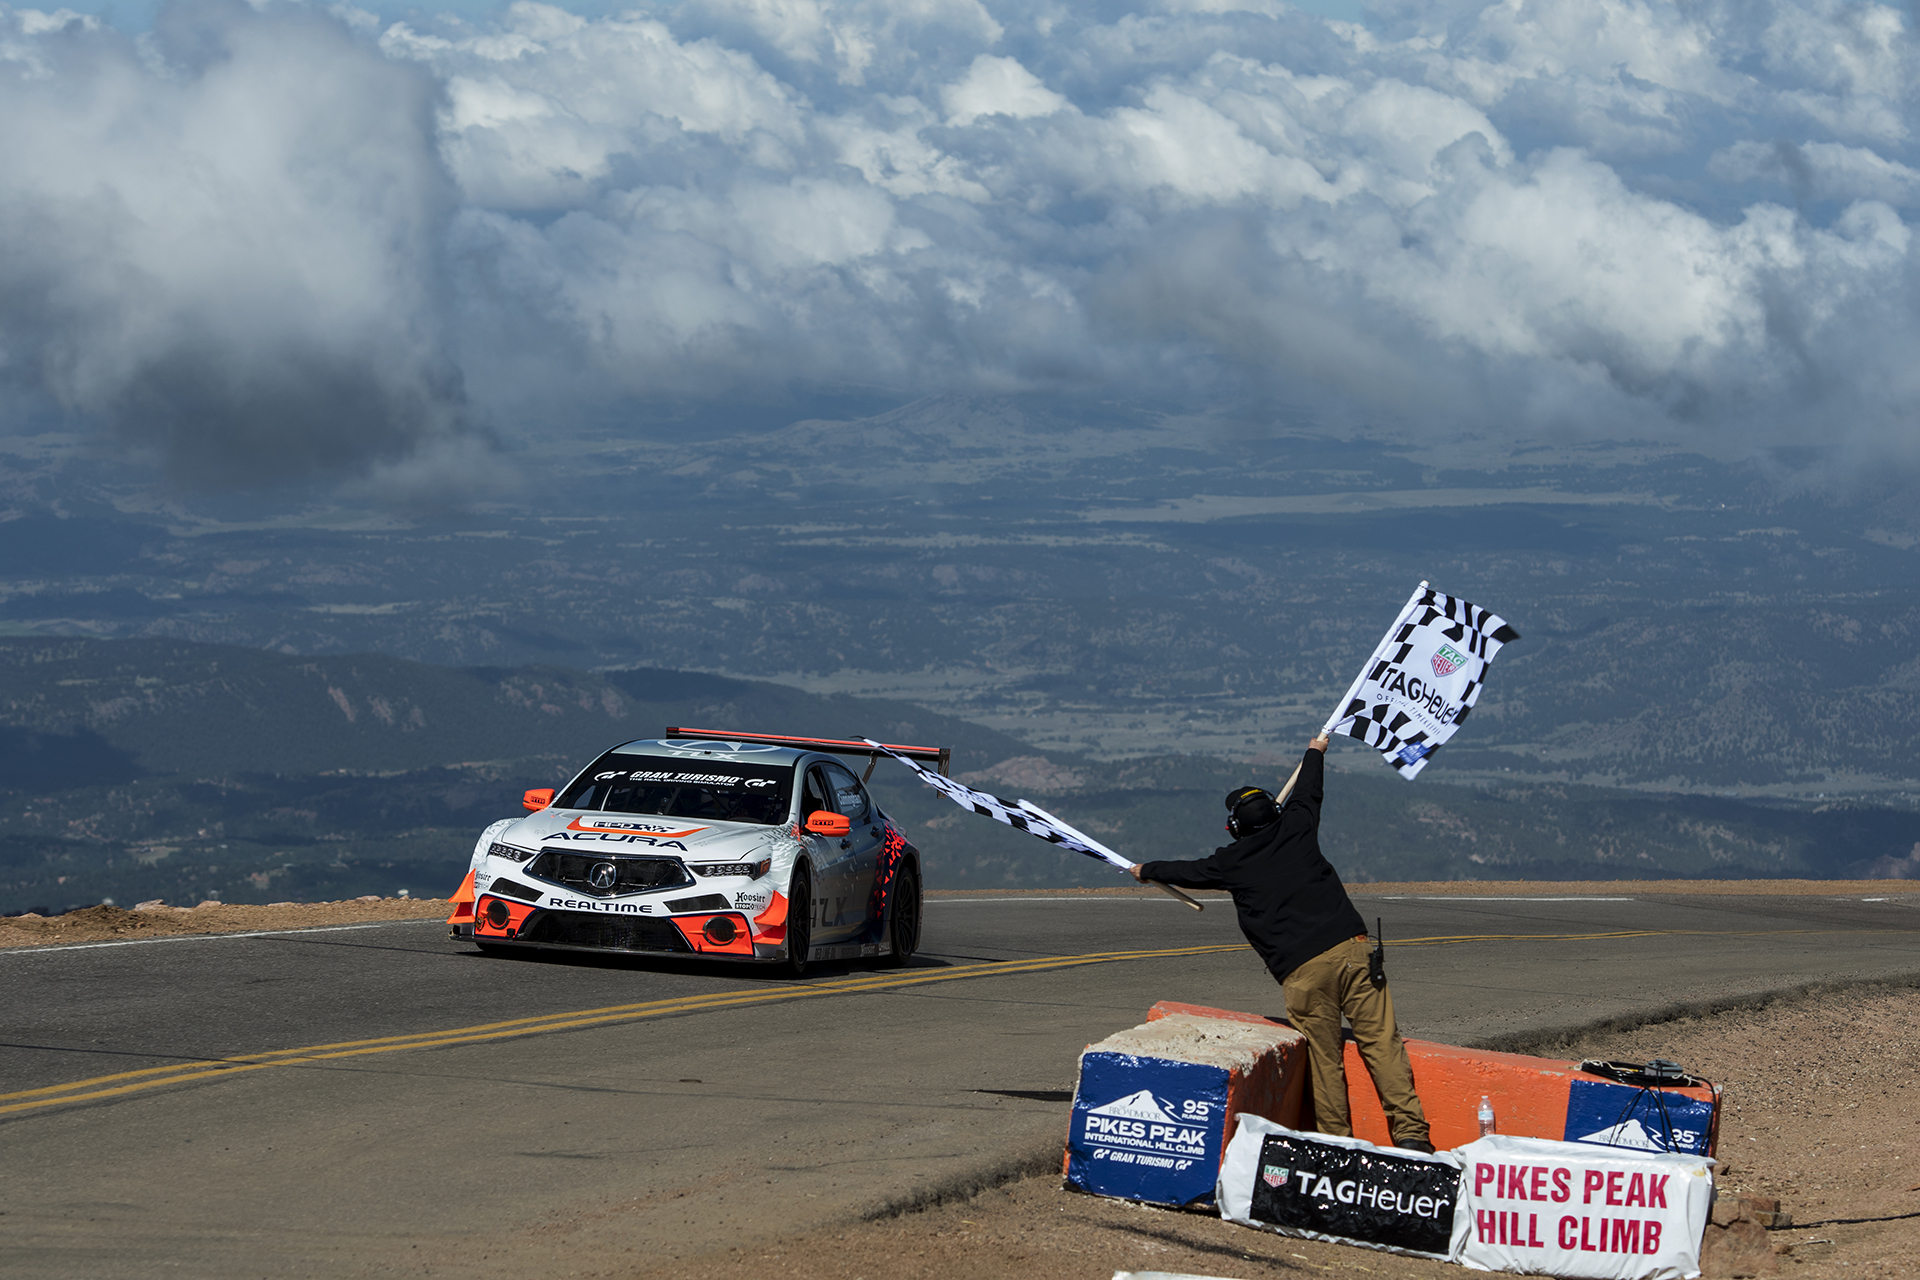 Romain Dumas Wins 2017 Pikes Peak Hill Climb His Third Le